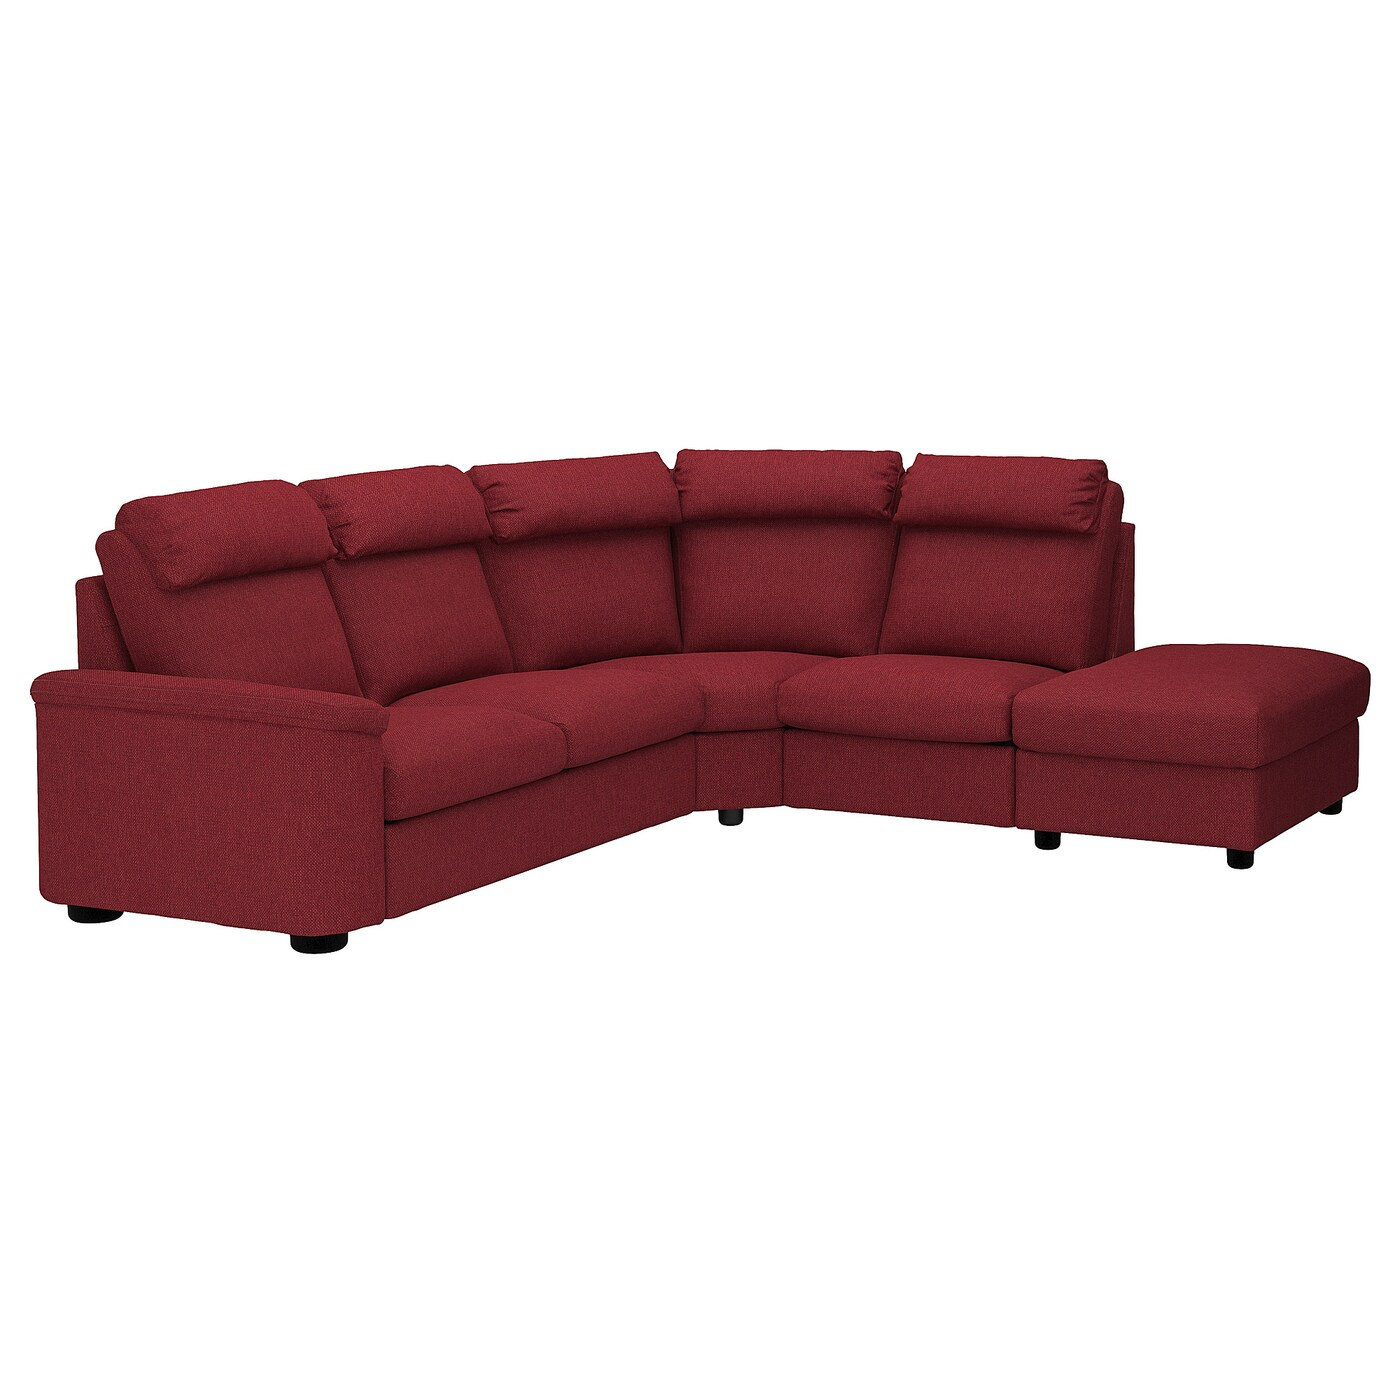 5 Seater Sofa Set Designs With Price   Buy Polyester Fabric ...